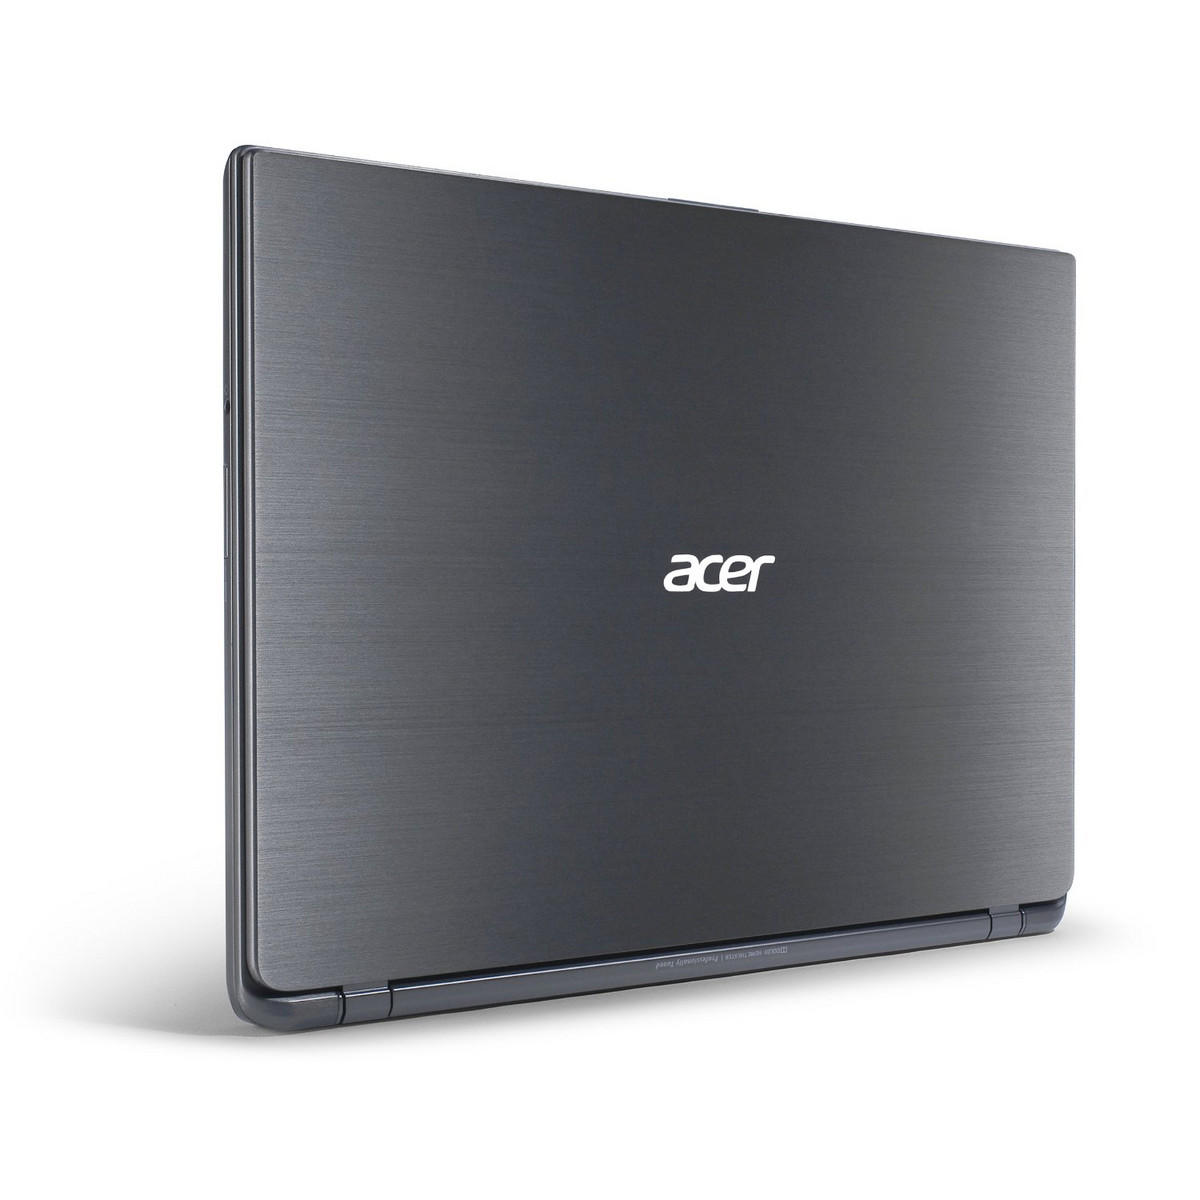 ACER ASPIRE M5-581T WINDOWS 8 DRIVERS DOWNLOAD